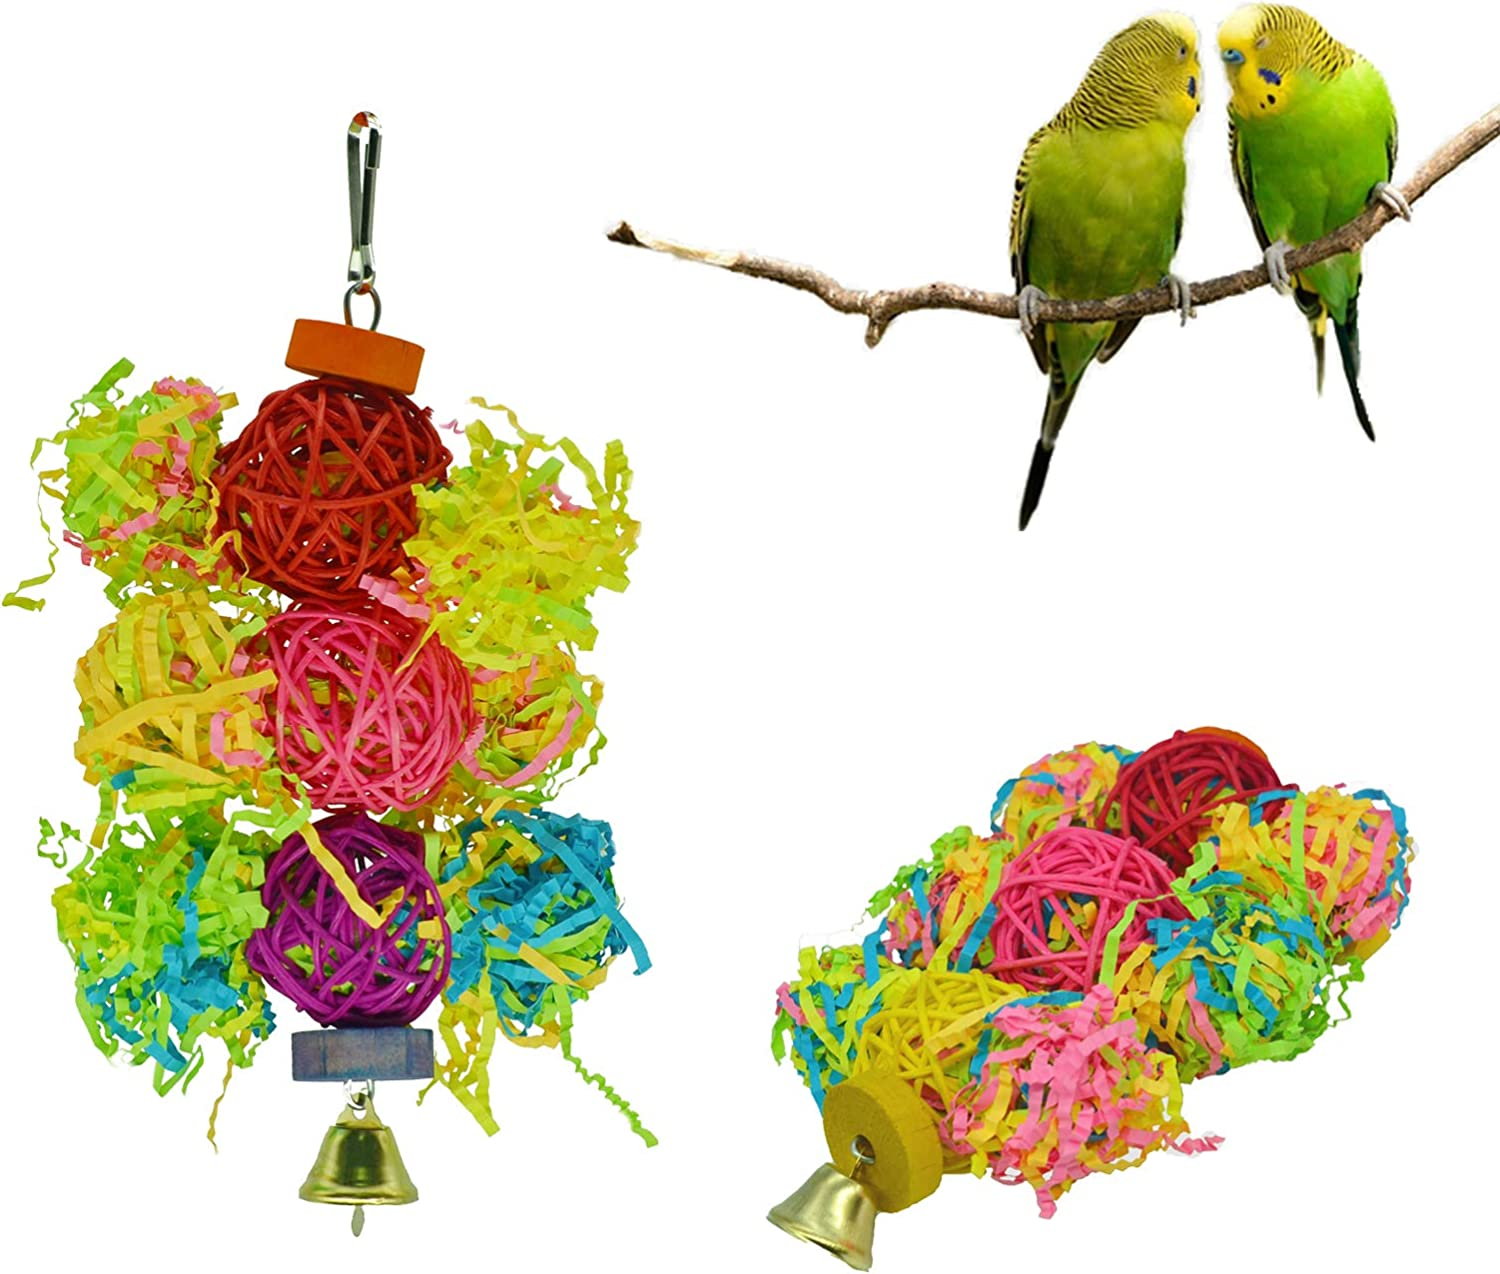 Eimoon Bird Toys Foraging Toys for Parrots 3 Pieces Hanging Parrot Toys Parakeet Toys with Bells for Cockatiel Cockatoo Budgies Lovebird Canary